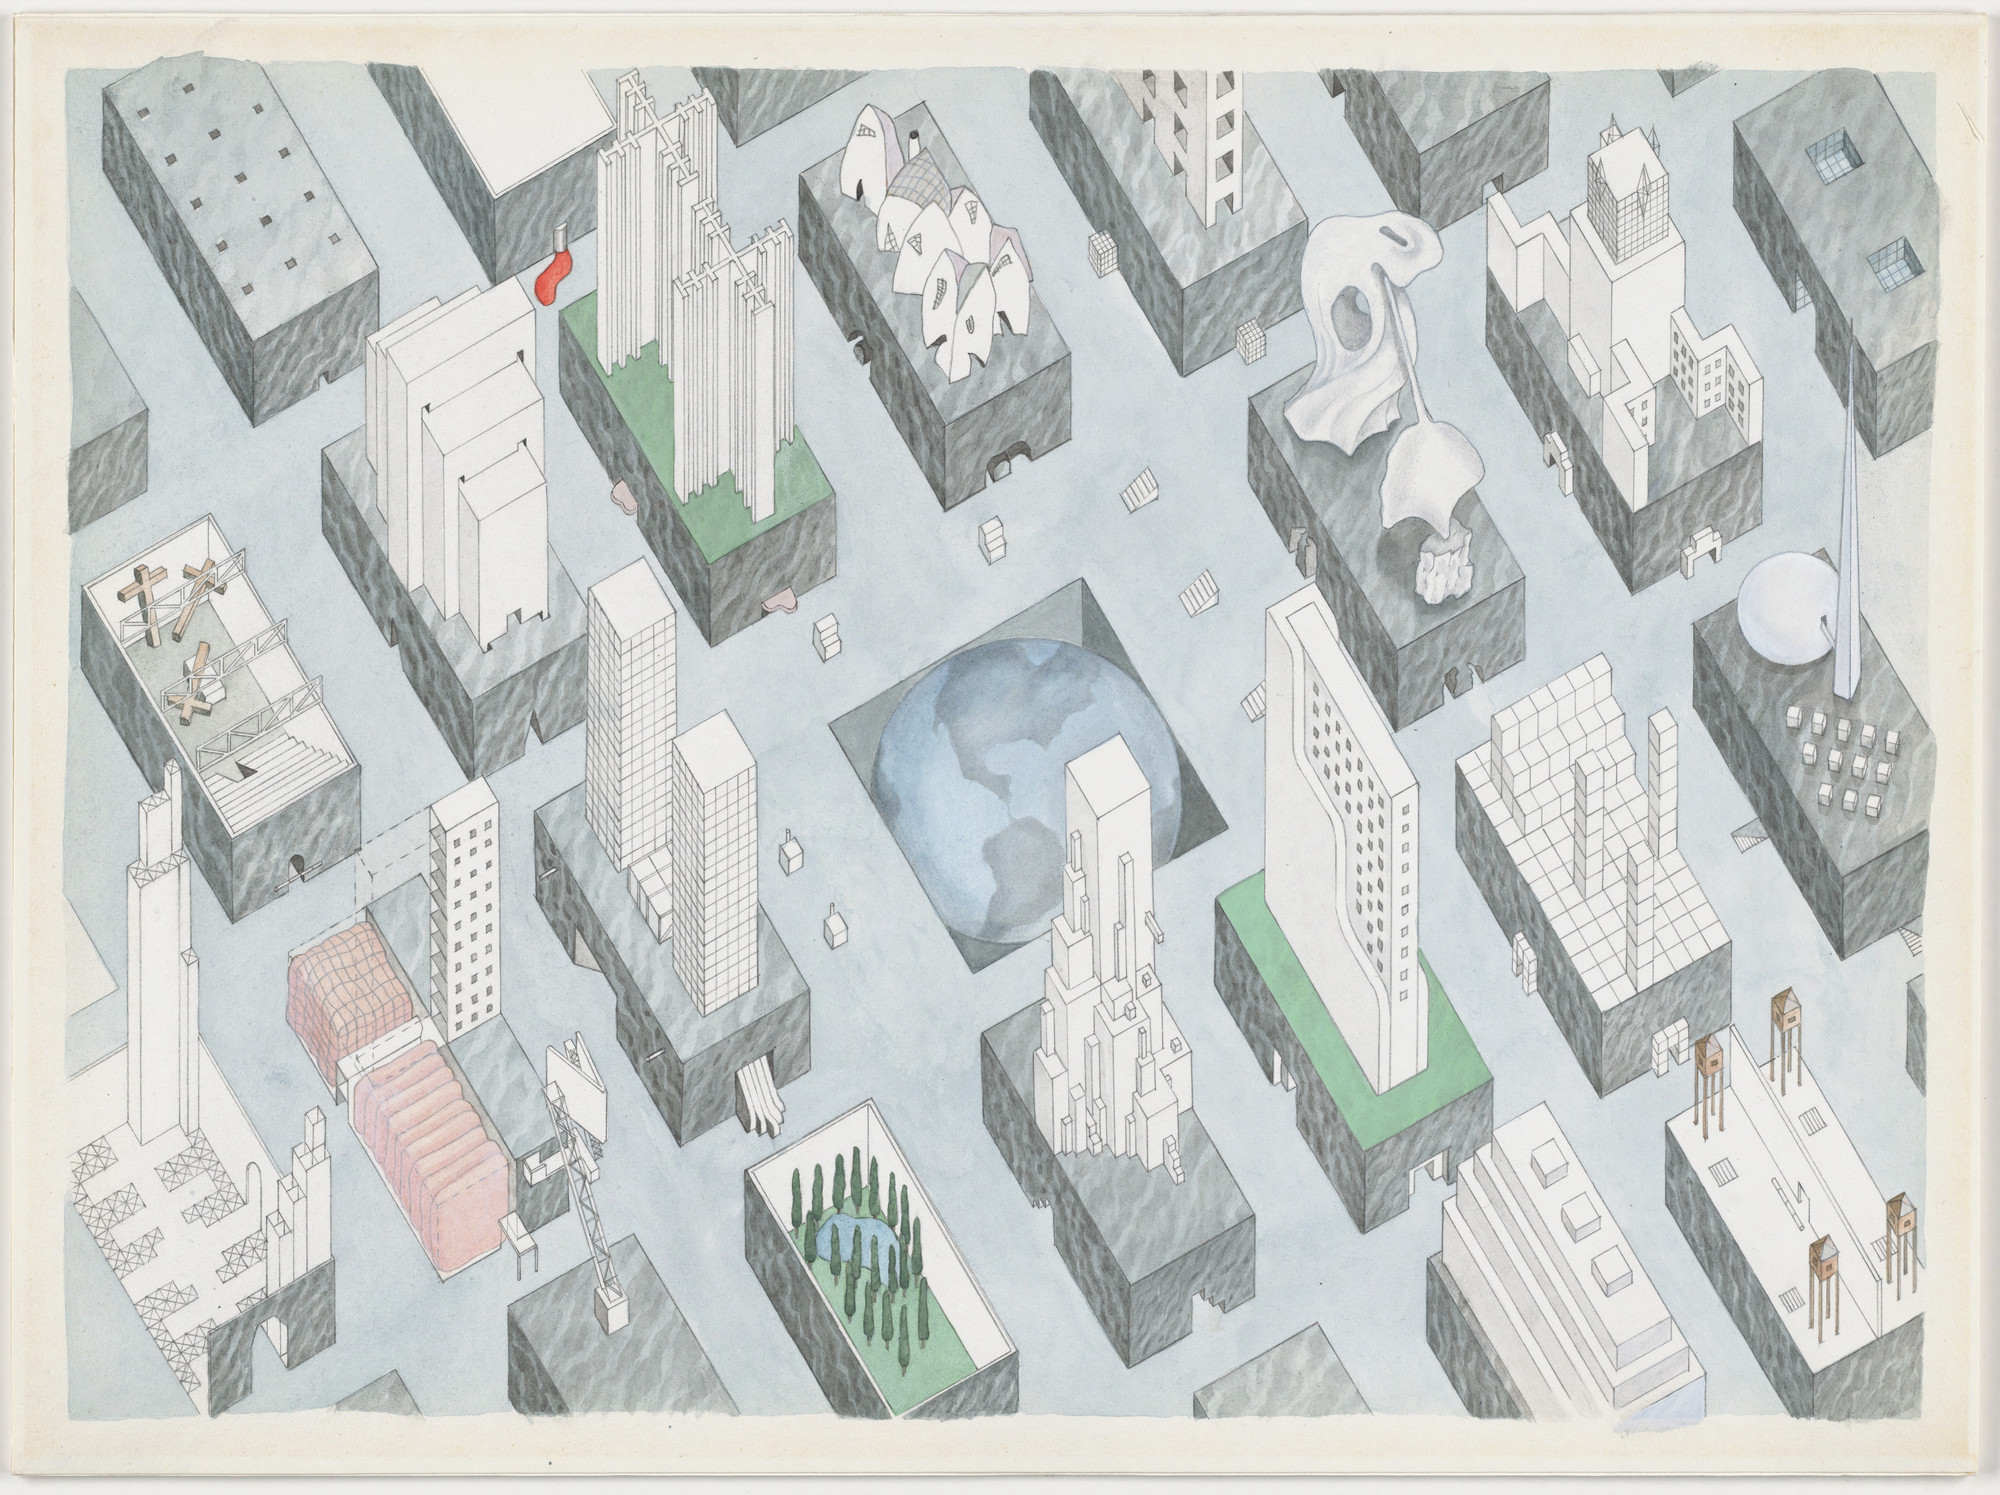 Rem Koolhaas, Madelon Vriesendorp. The City of the Captive Globe Project, New York, New York, Axonometric. 1972